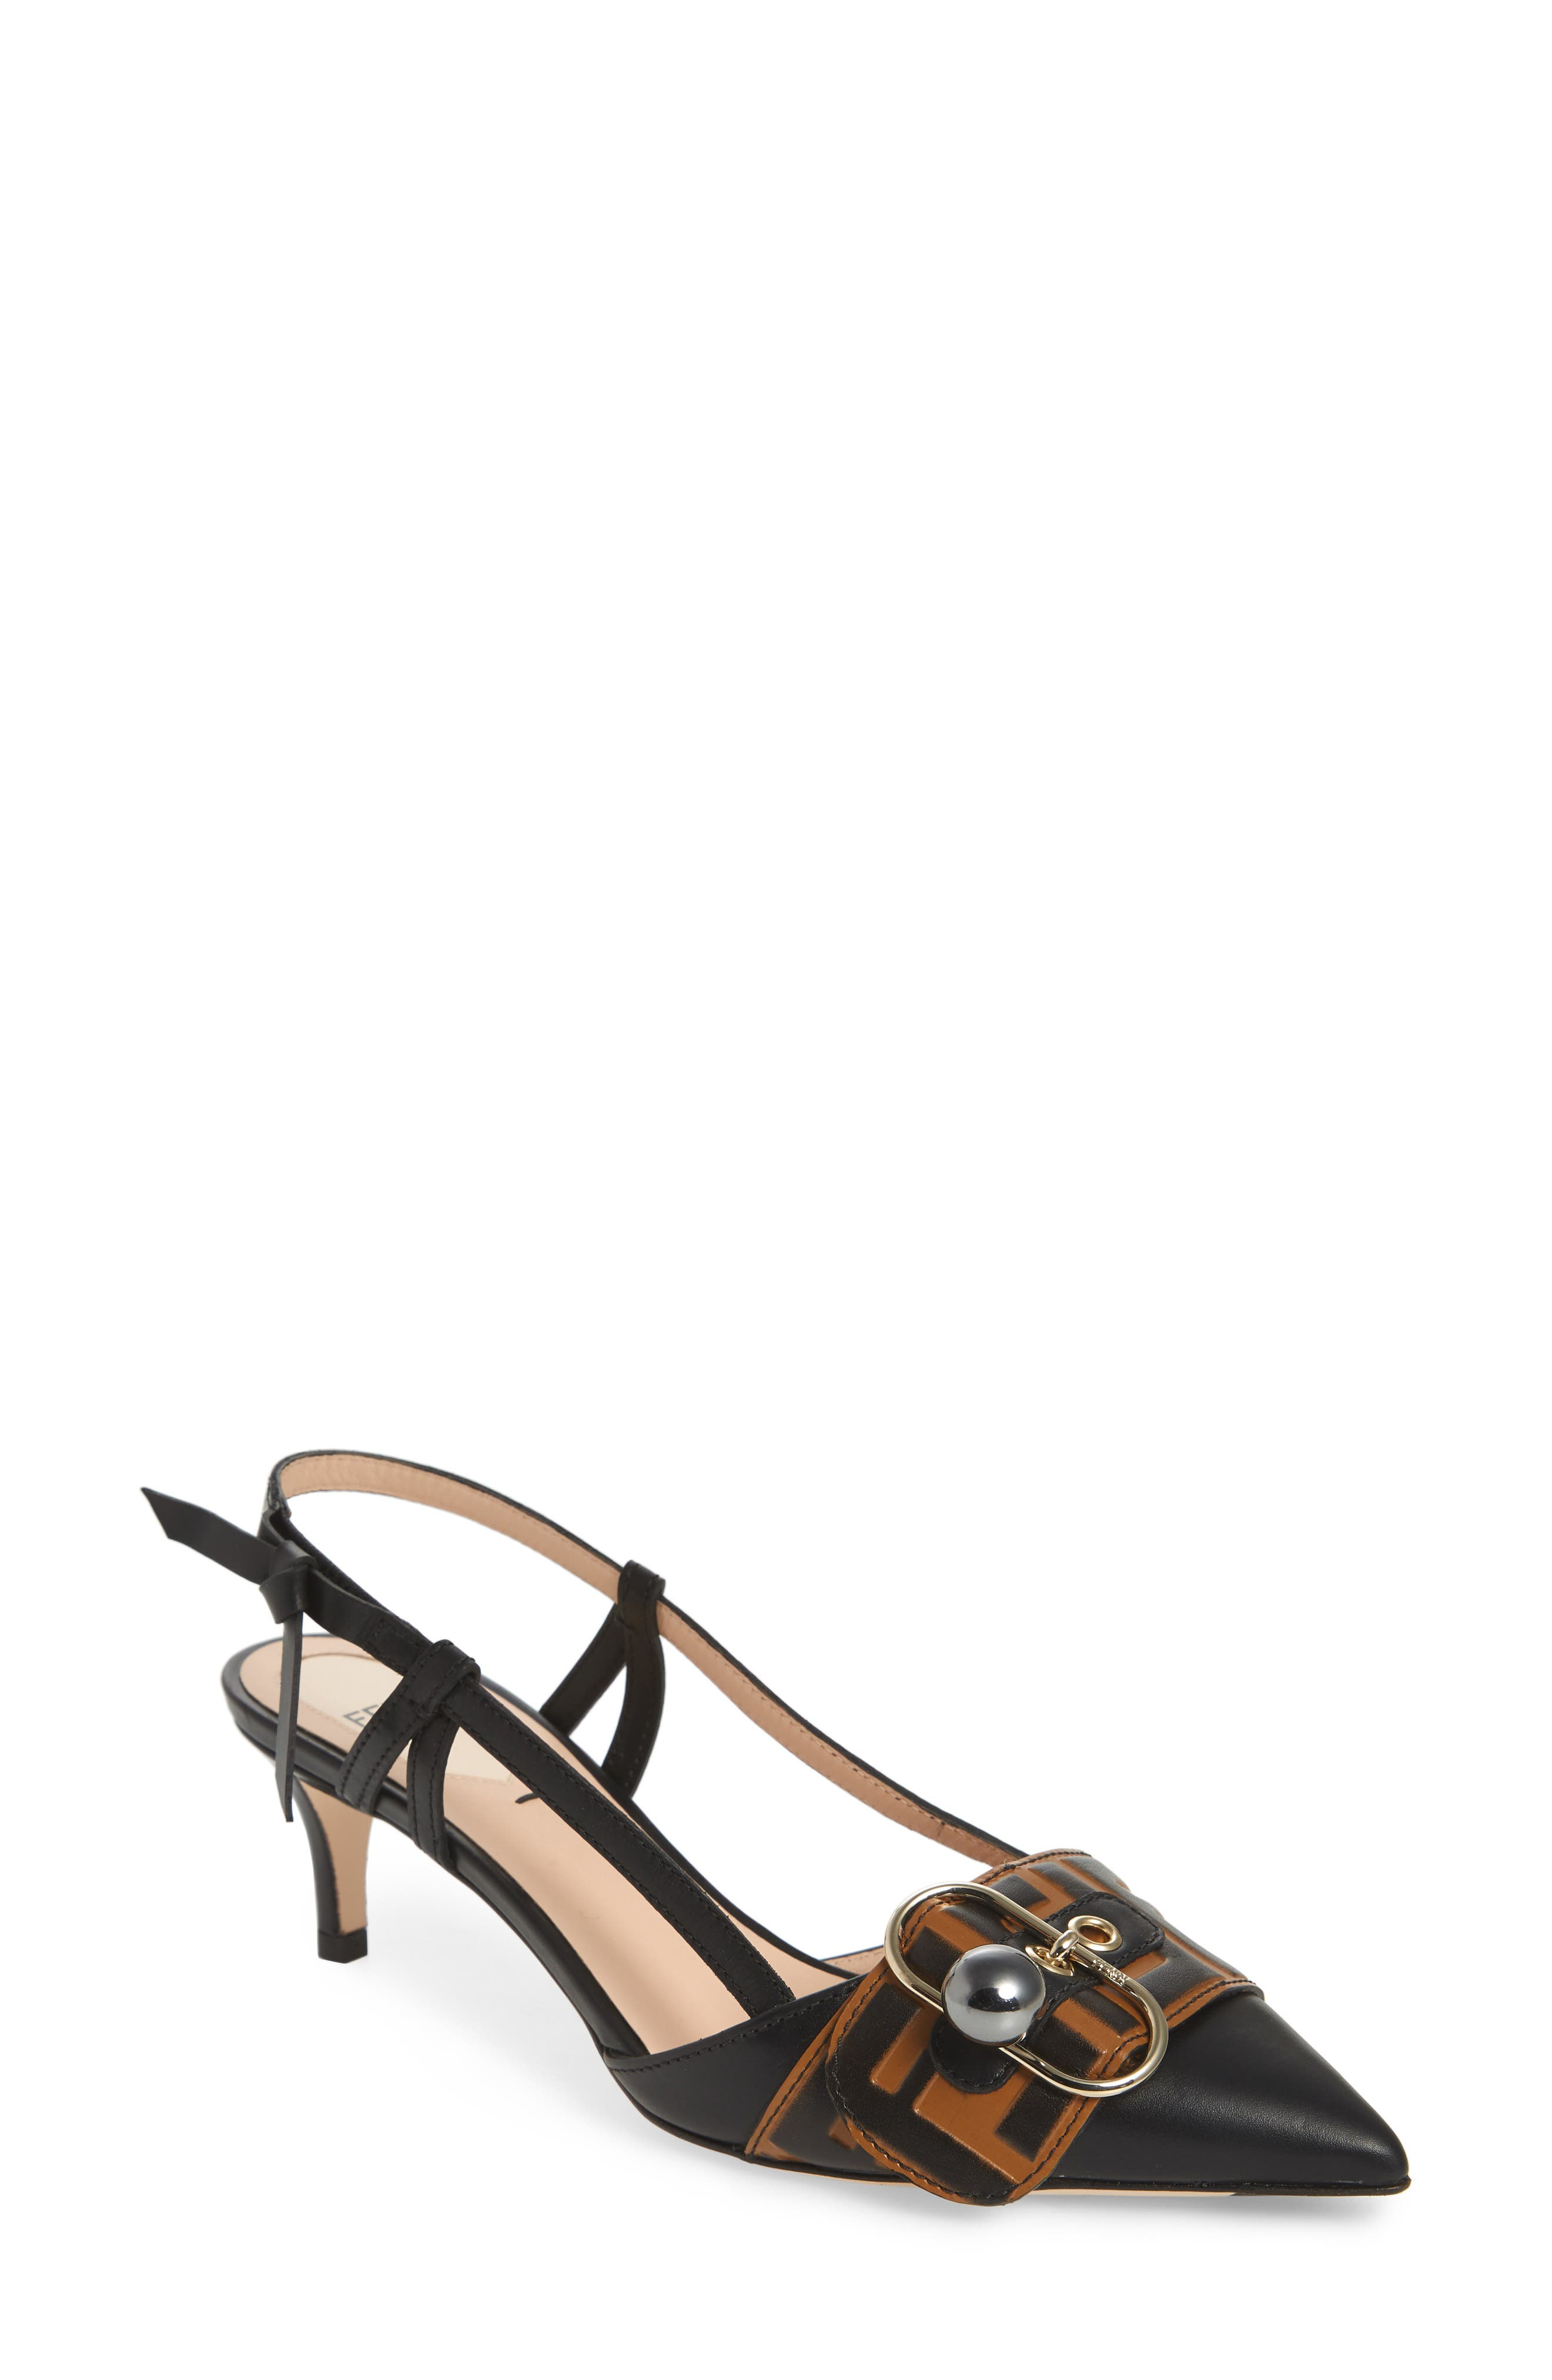 Pearland Slingback Sandal,                         Main,                         color, 006